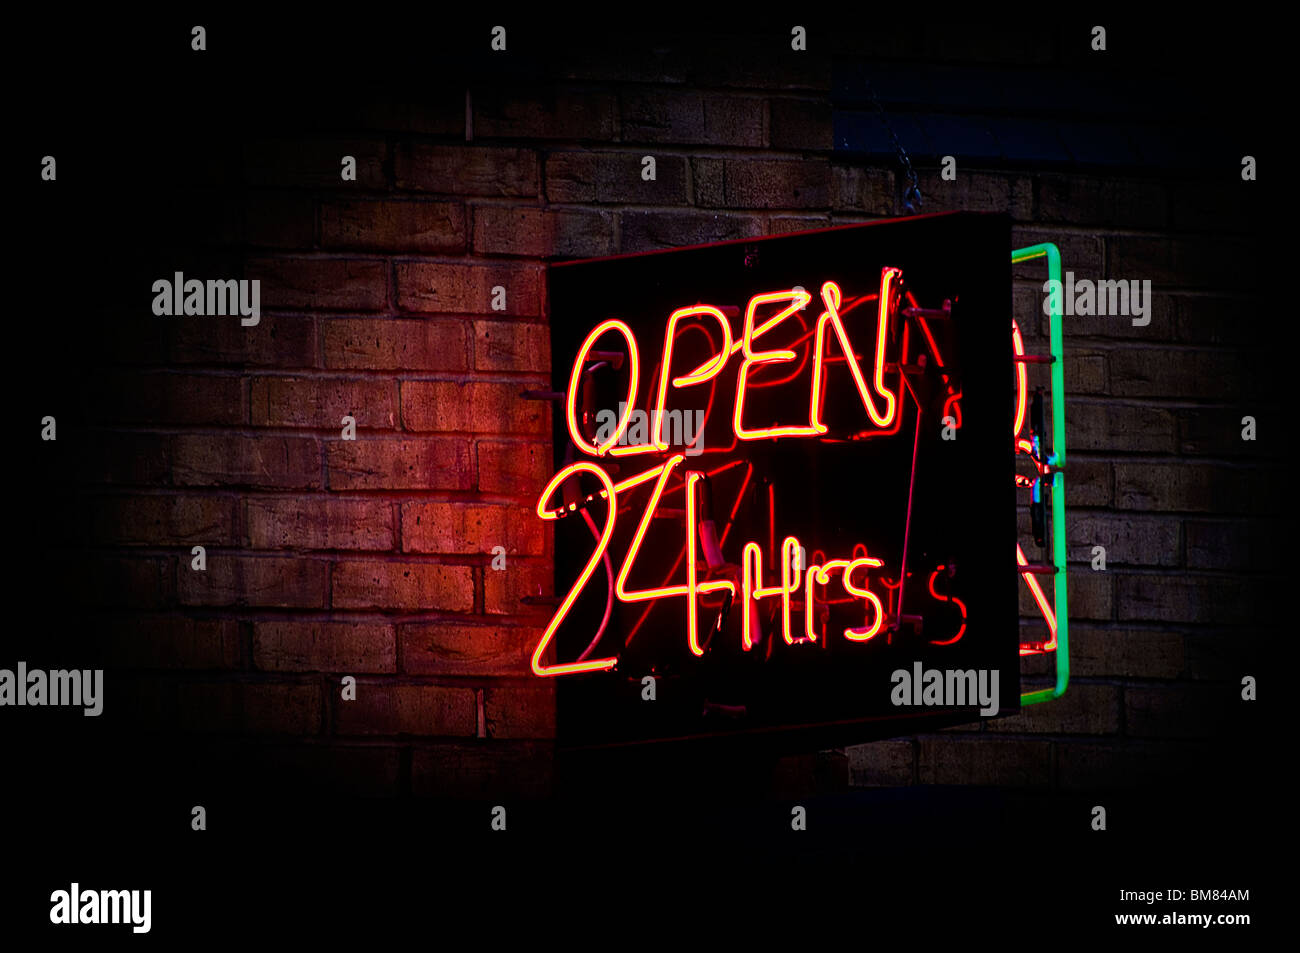 open 24 hours - Stock Image